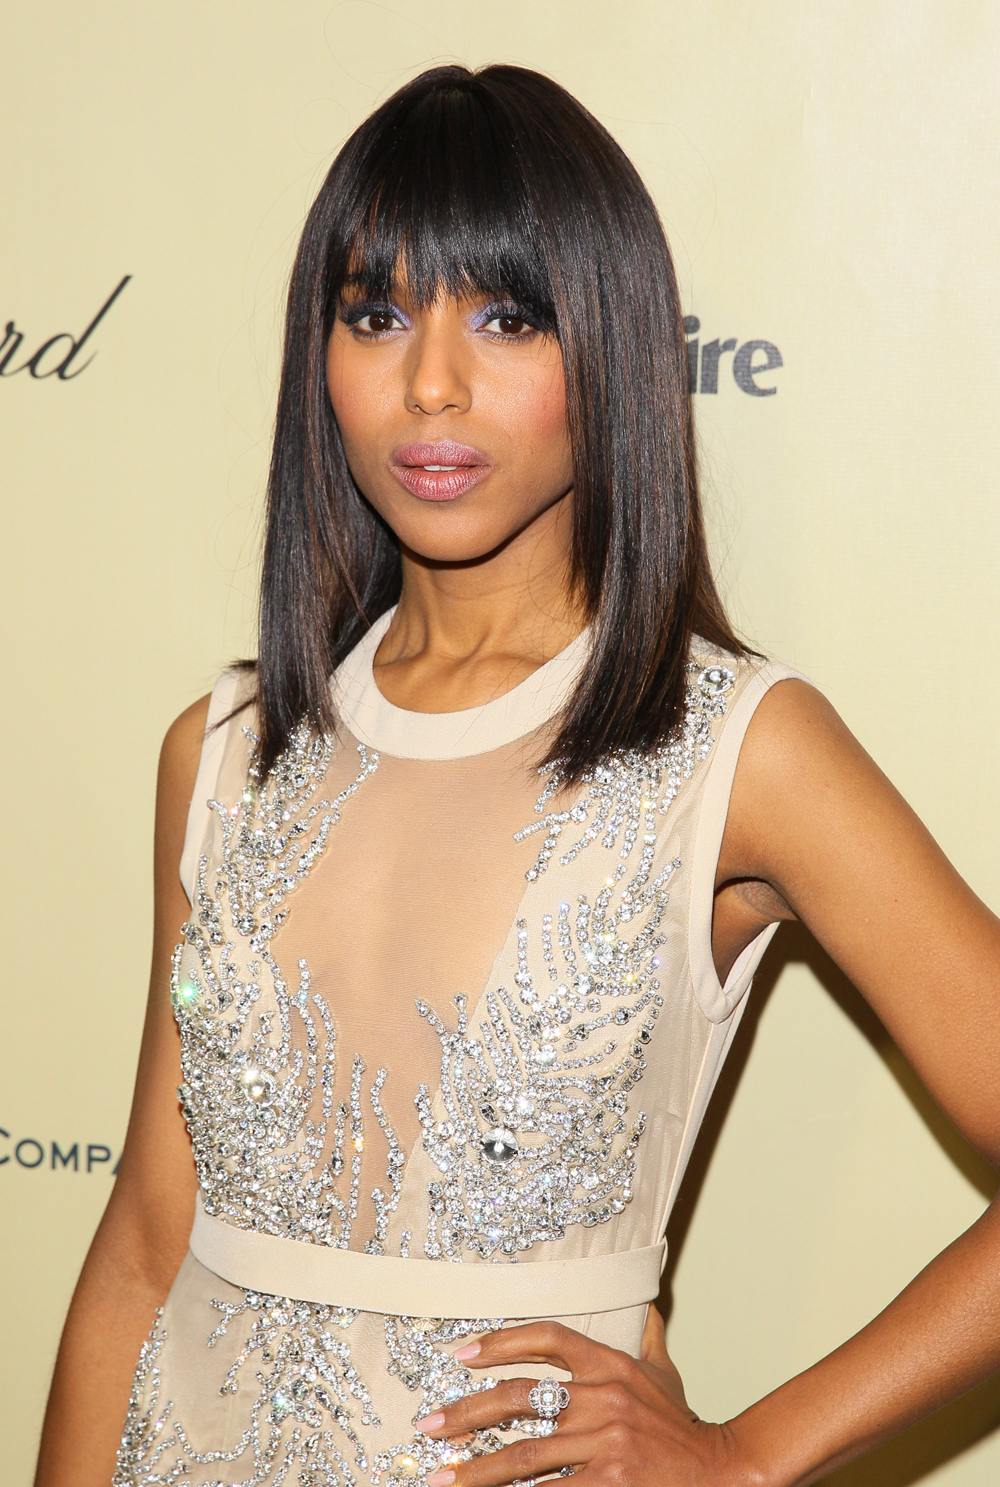 Kerry Washington's Hair at the 2013 Golden Globes